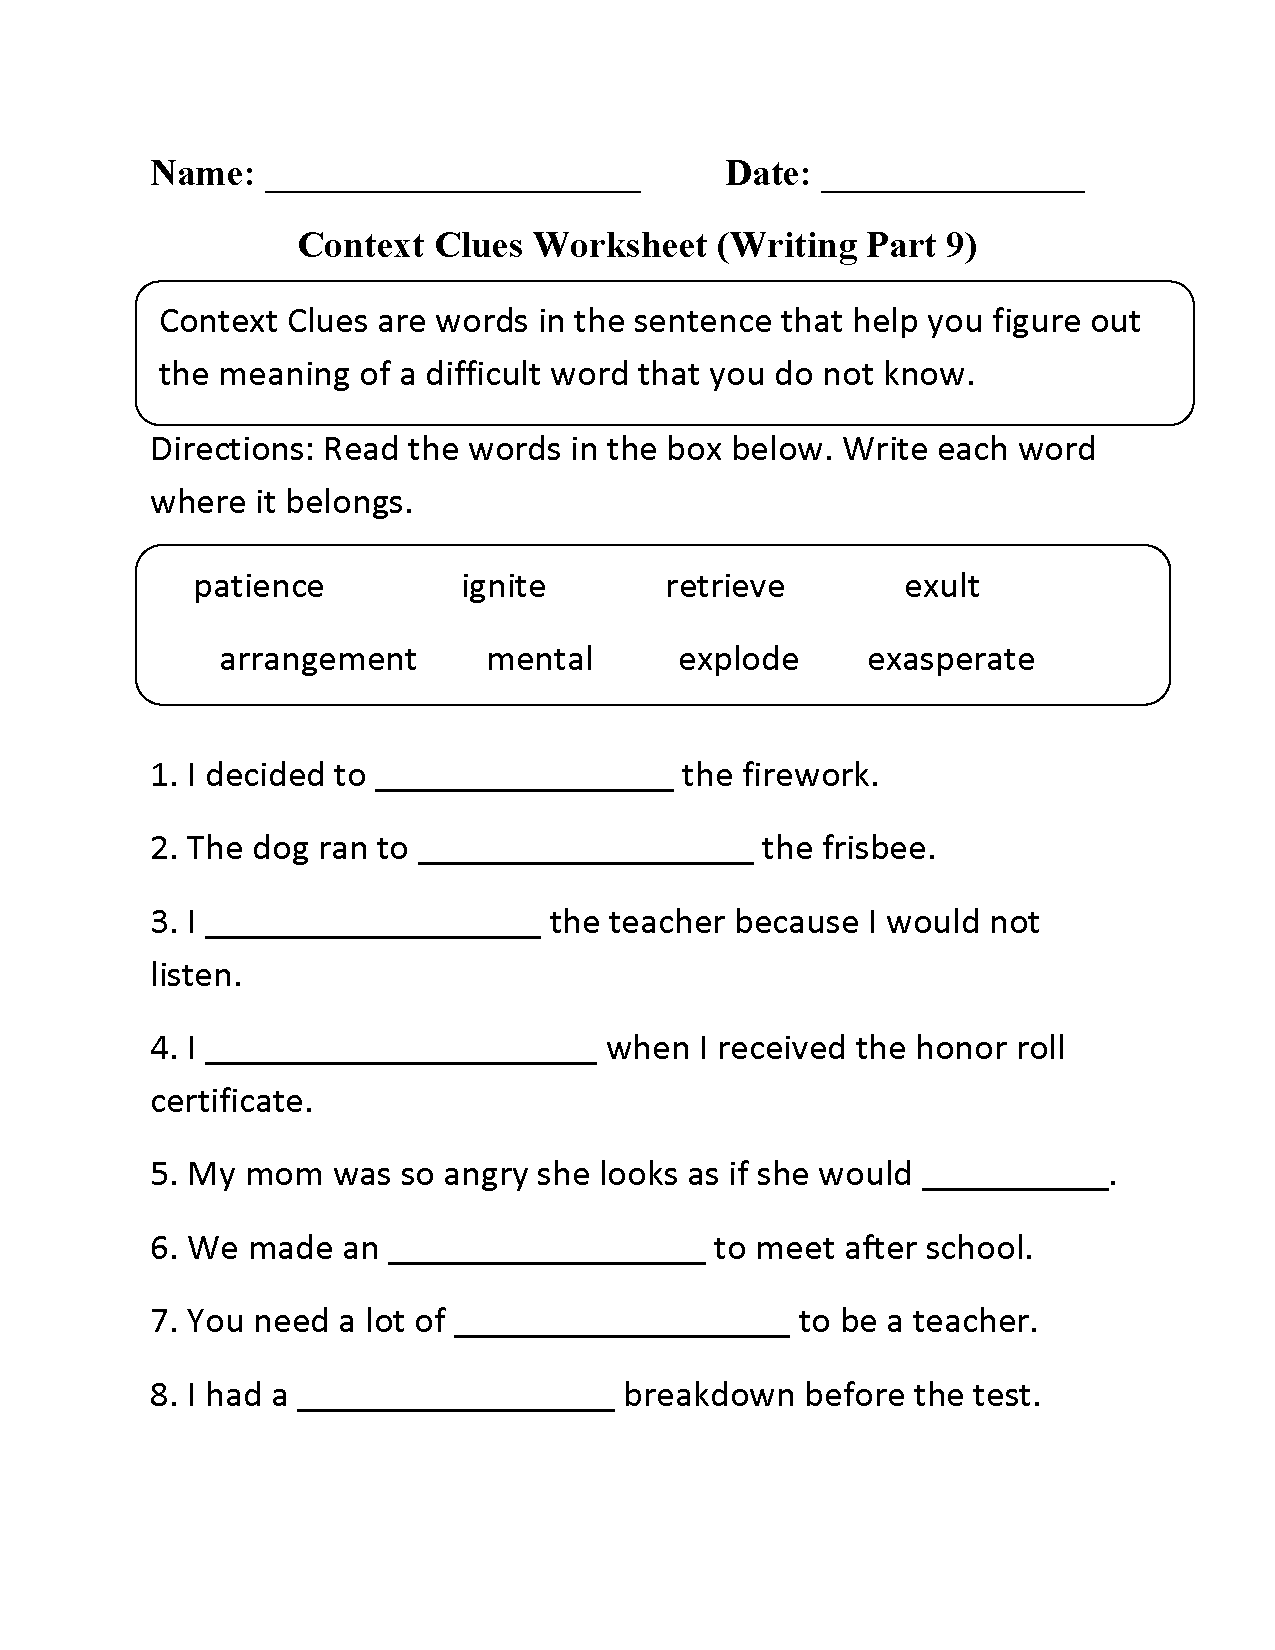 Worksheets Fourth Grade Vocabulary Worksheets context clues worksheet writing part 9 intermediate language intermediate